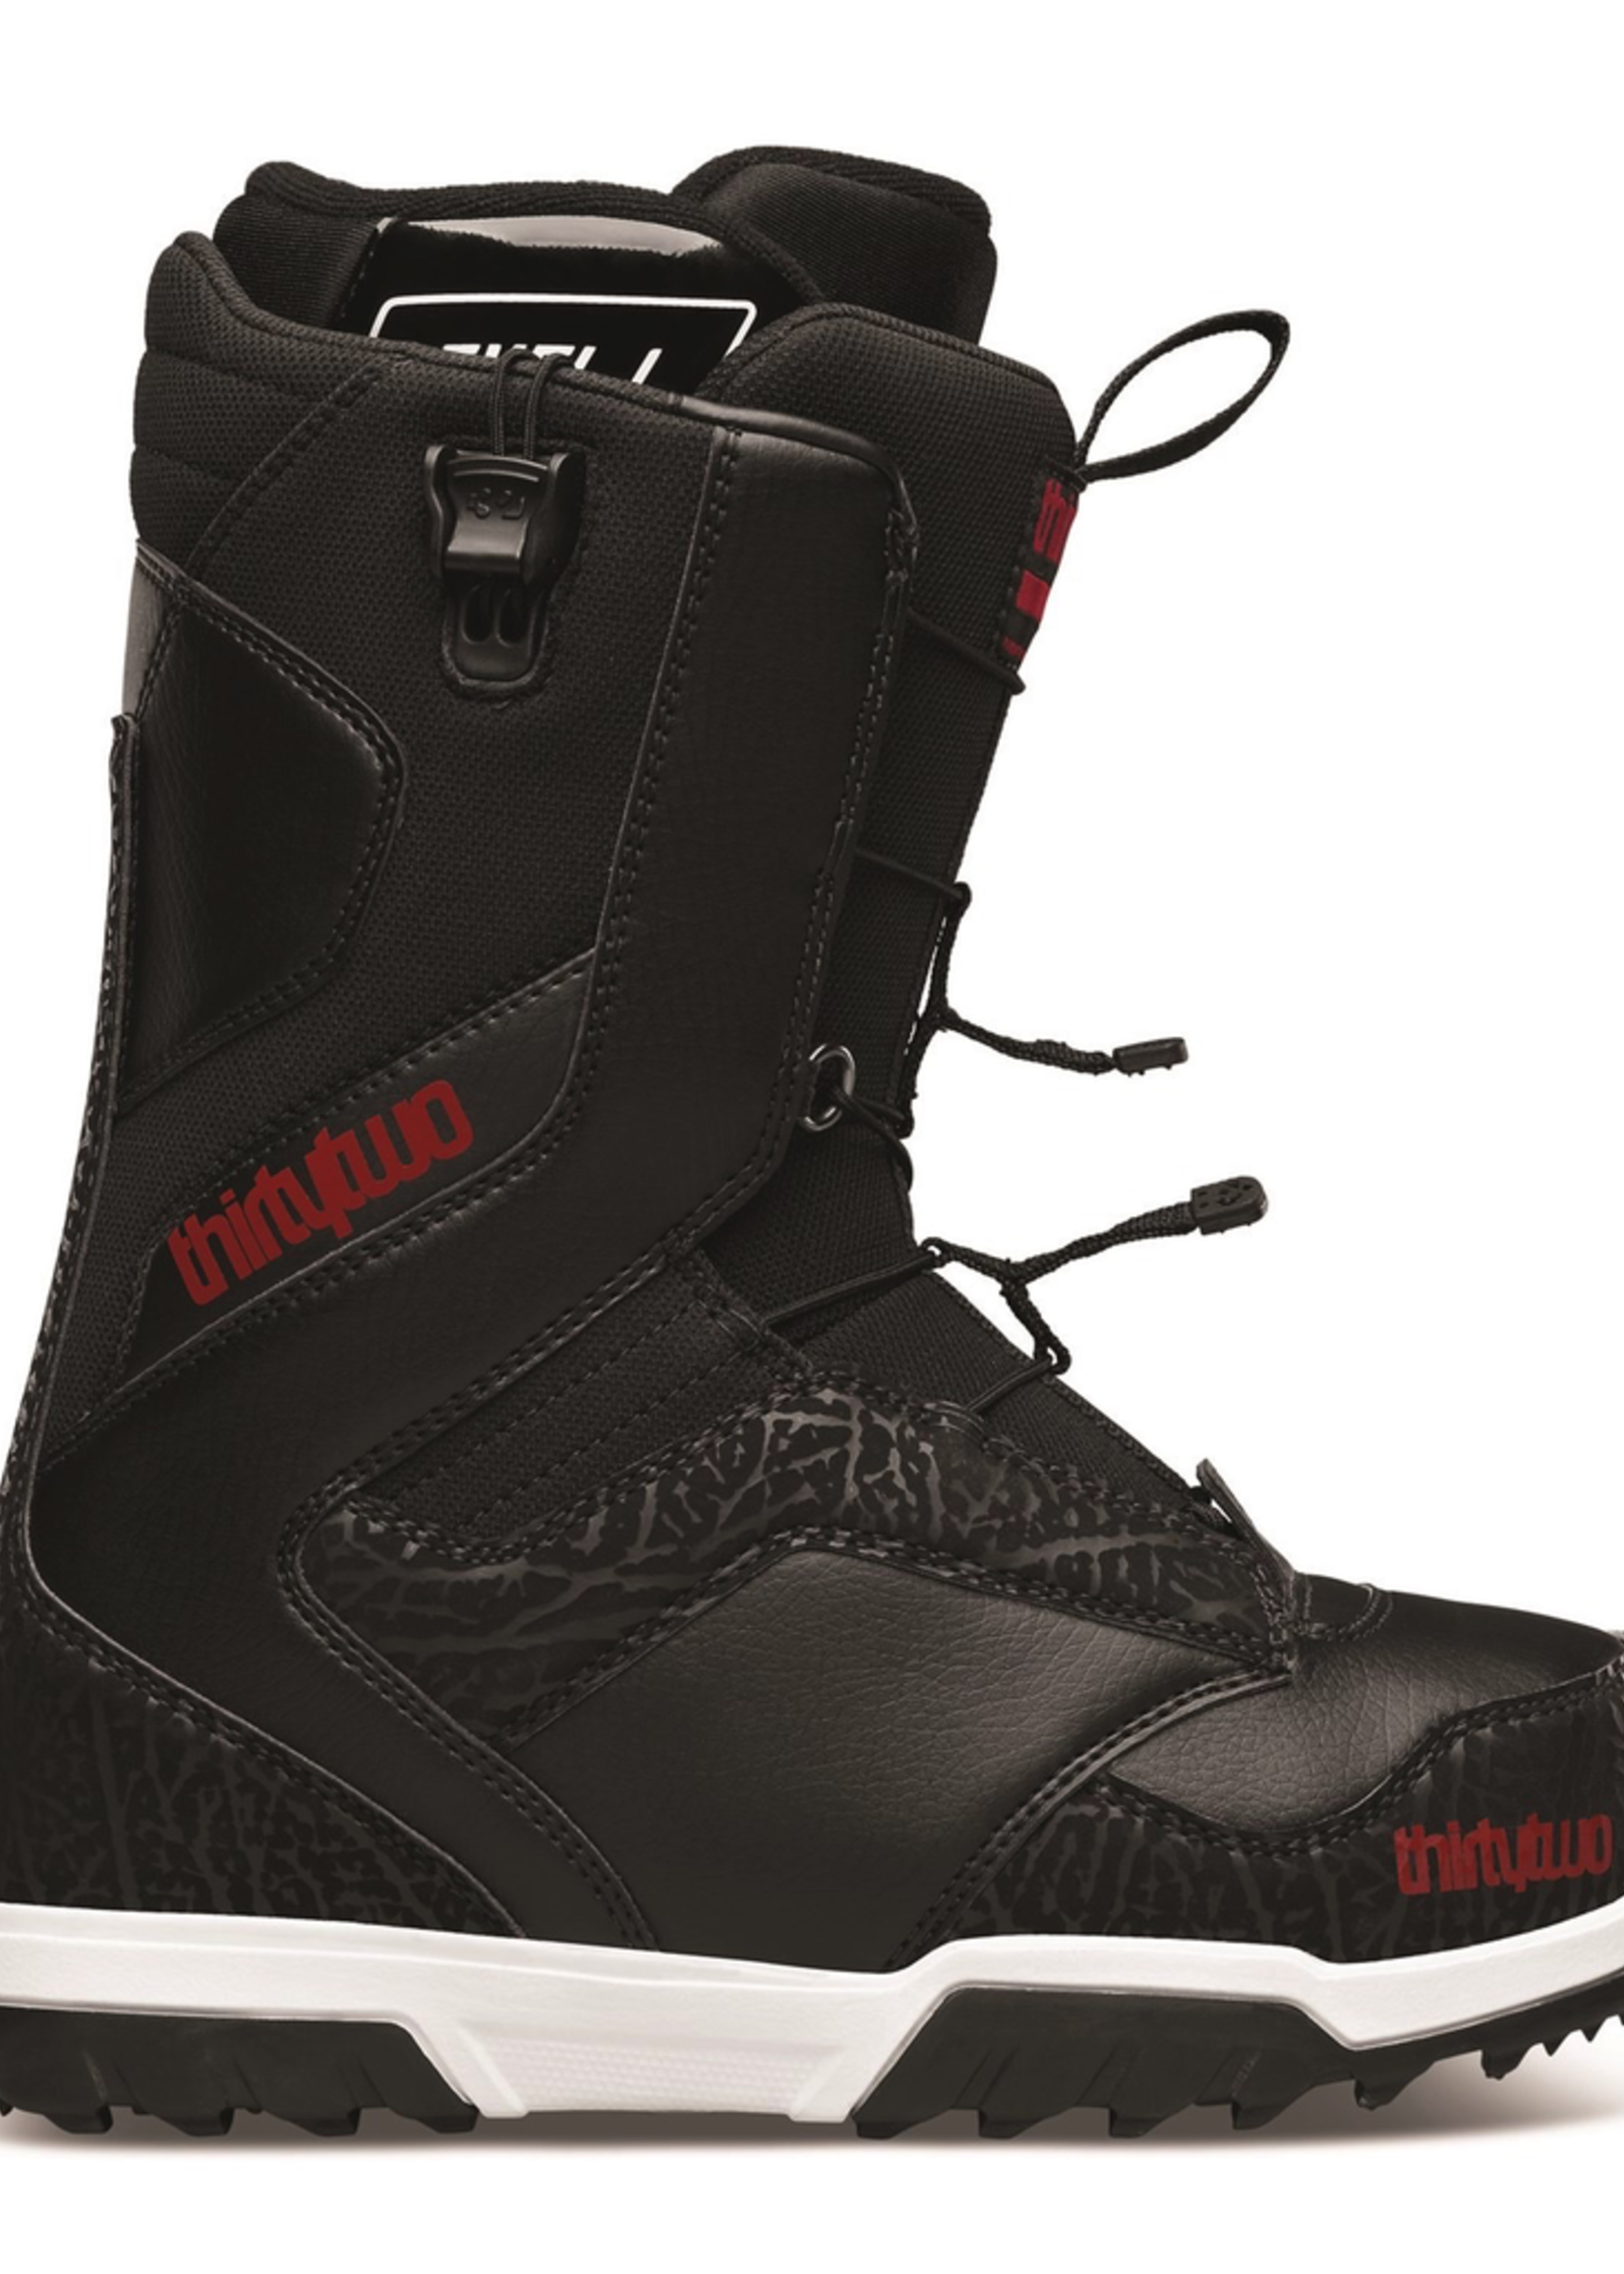 Thirty-two 32 GROOMER BOOT